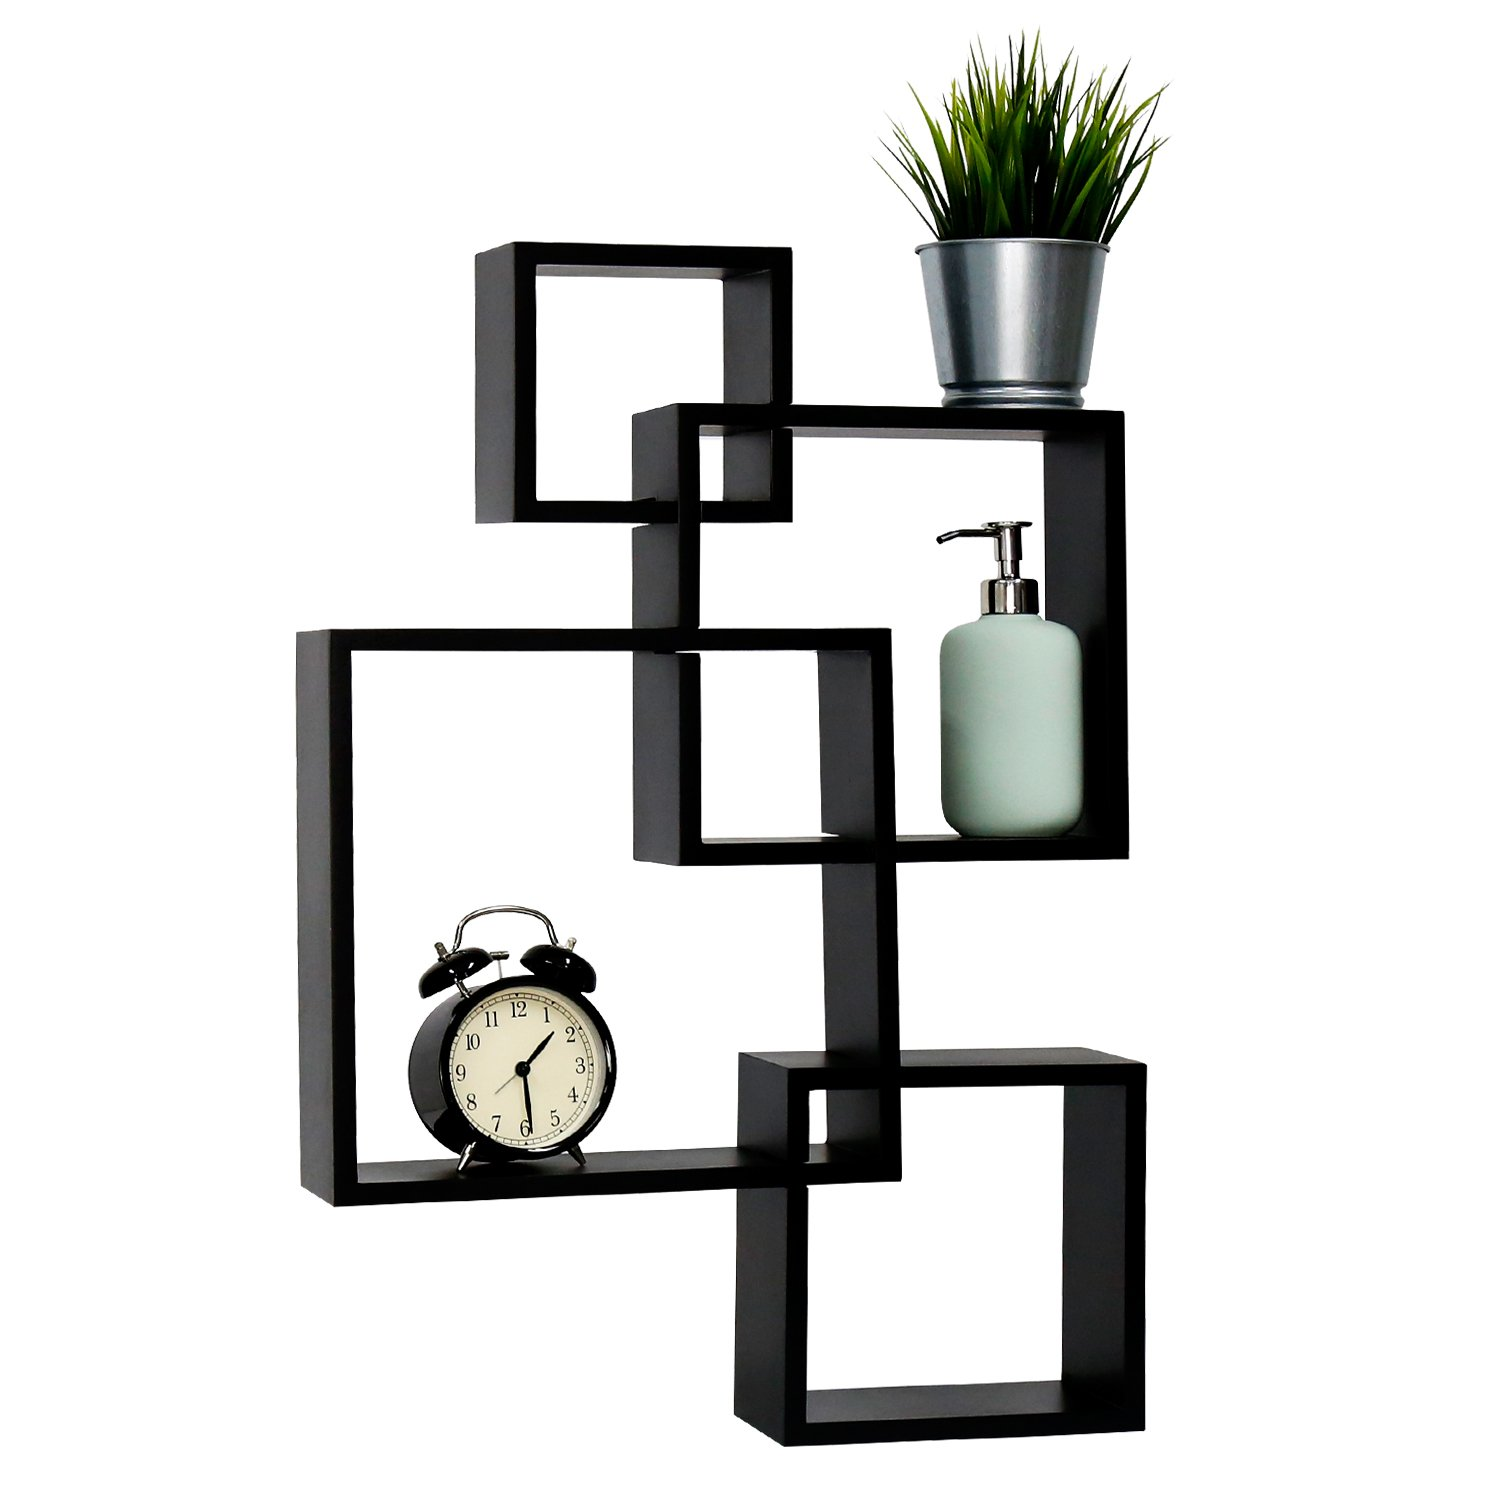 Peach Tree Intersecting Squares Black Floating Shelf Wall Mounted Home Decor Furniture